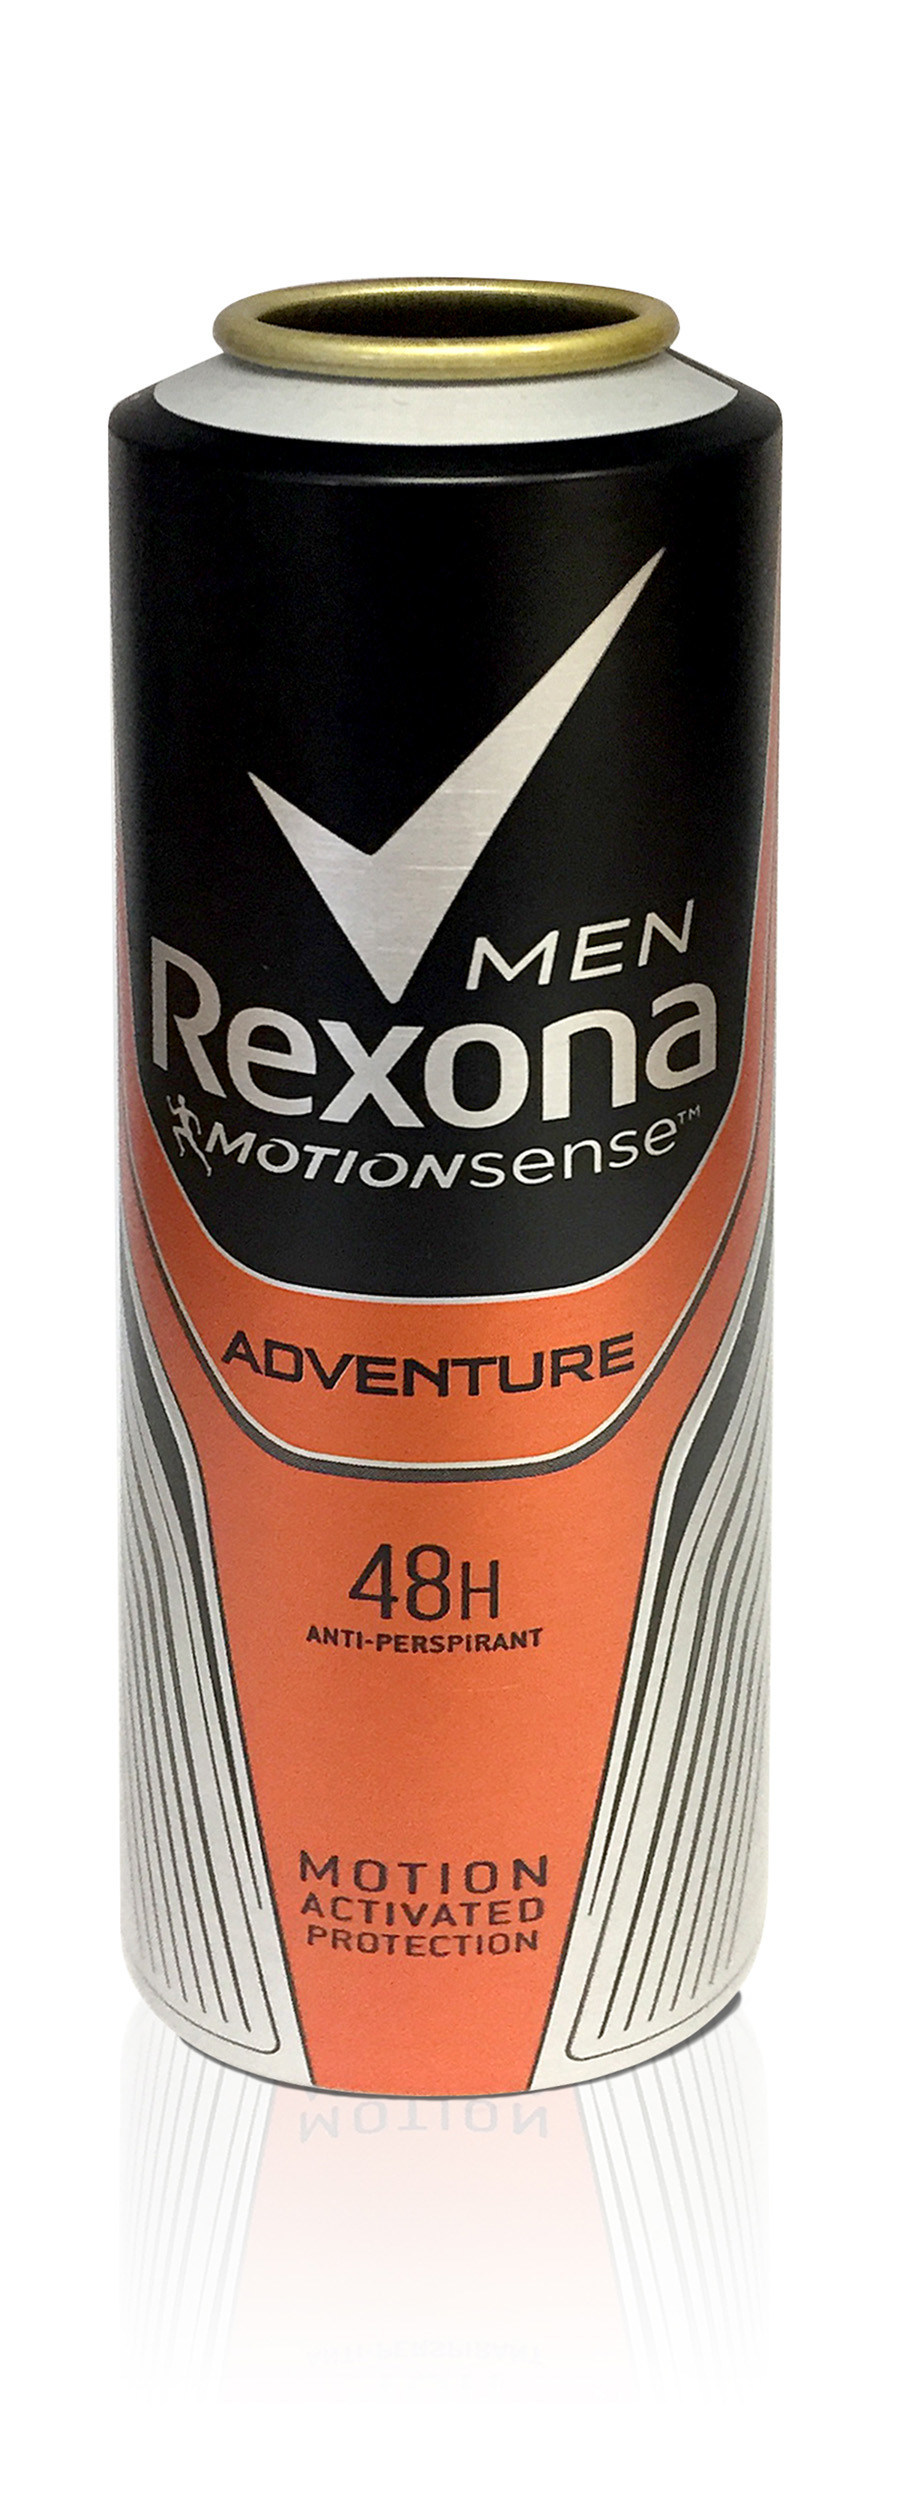 Ball Corporation and Unilever have partnered to bring a more sustainable aluminum aerosol can to the market. The new Rexona and Sure antiperspirant cans employ Ball's innovative ReAl™ technology, which allows the lightweighting of its impact extruded aerosol cans by 20 percent.